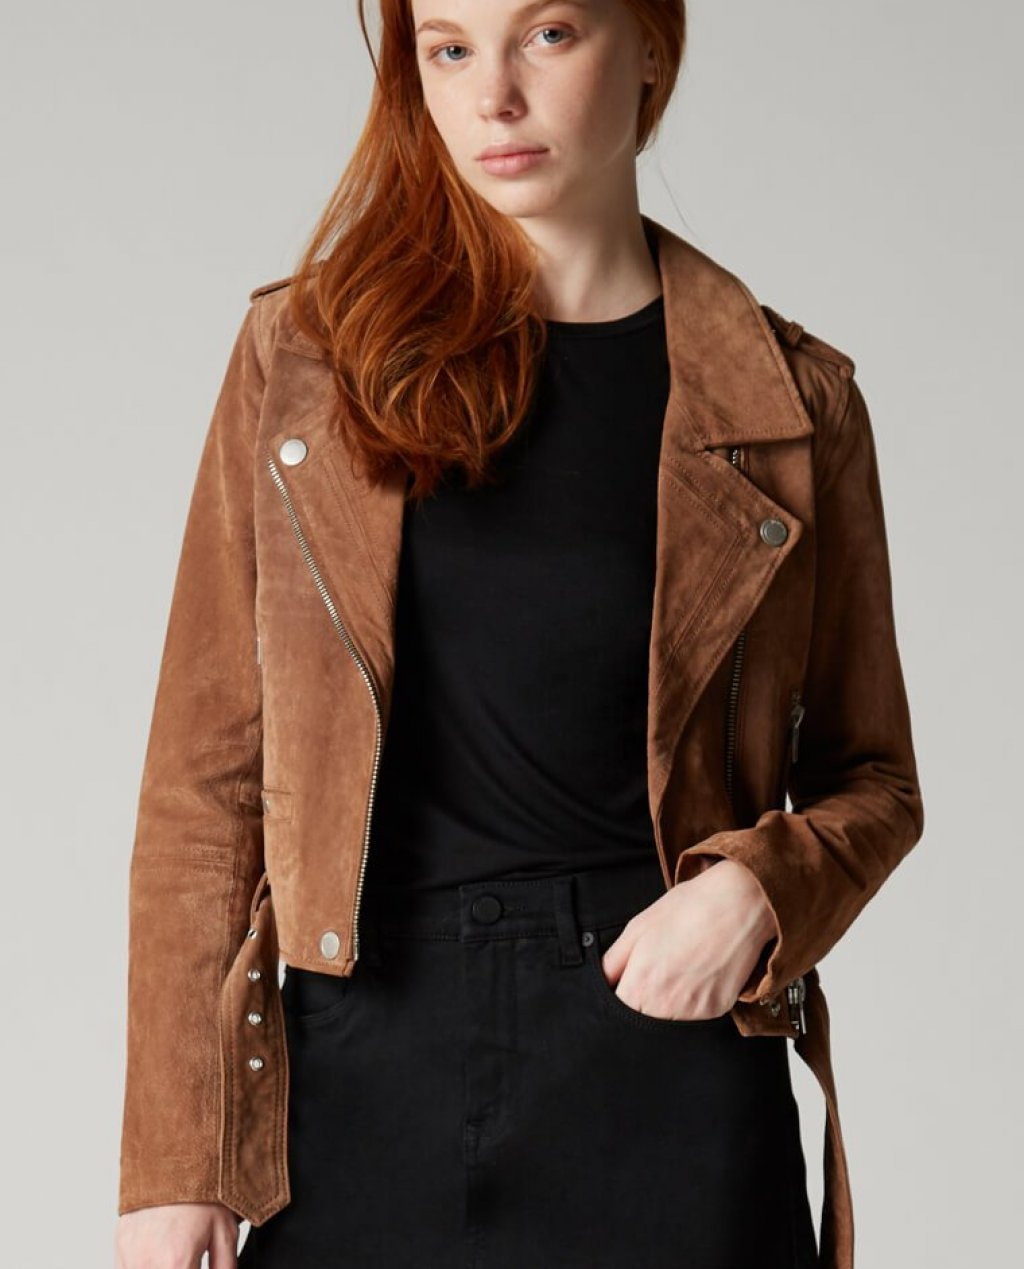 Coffee Bean Suede Jacket